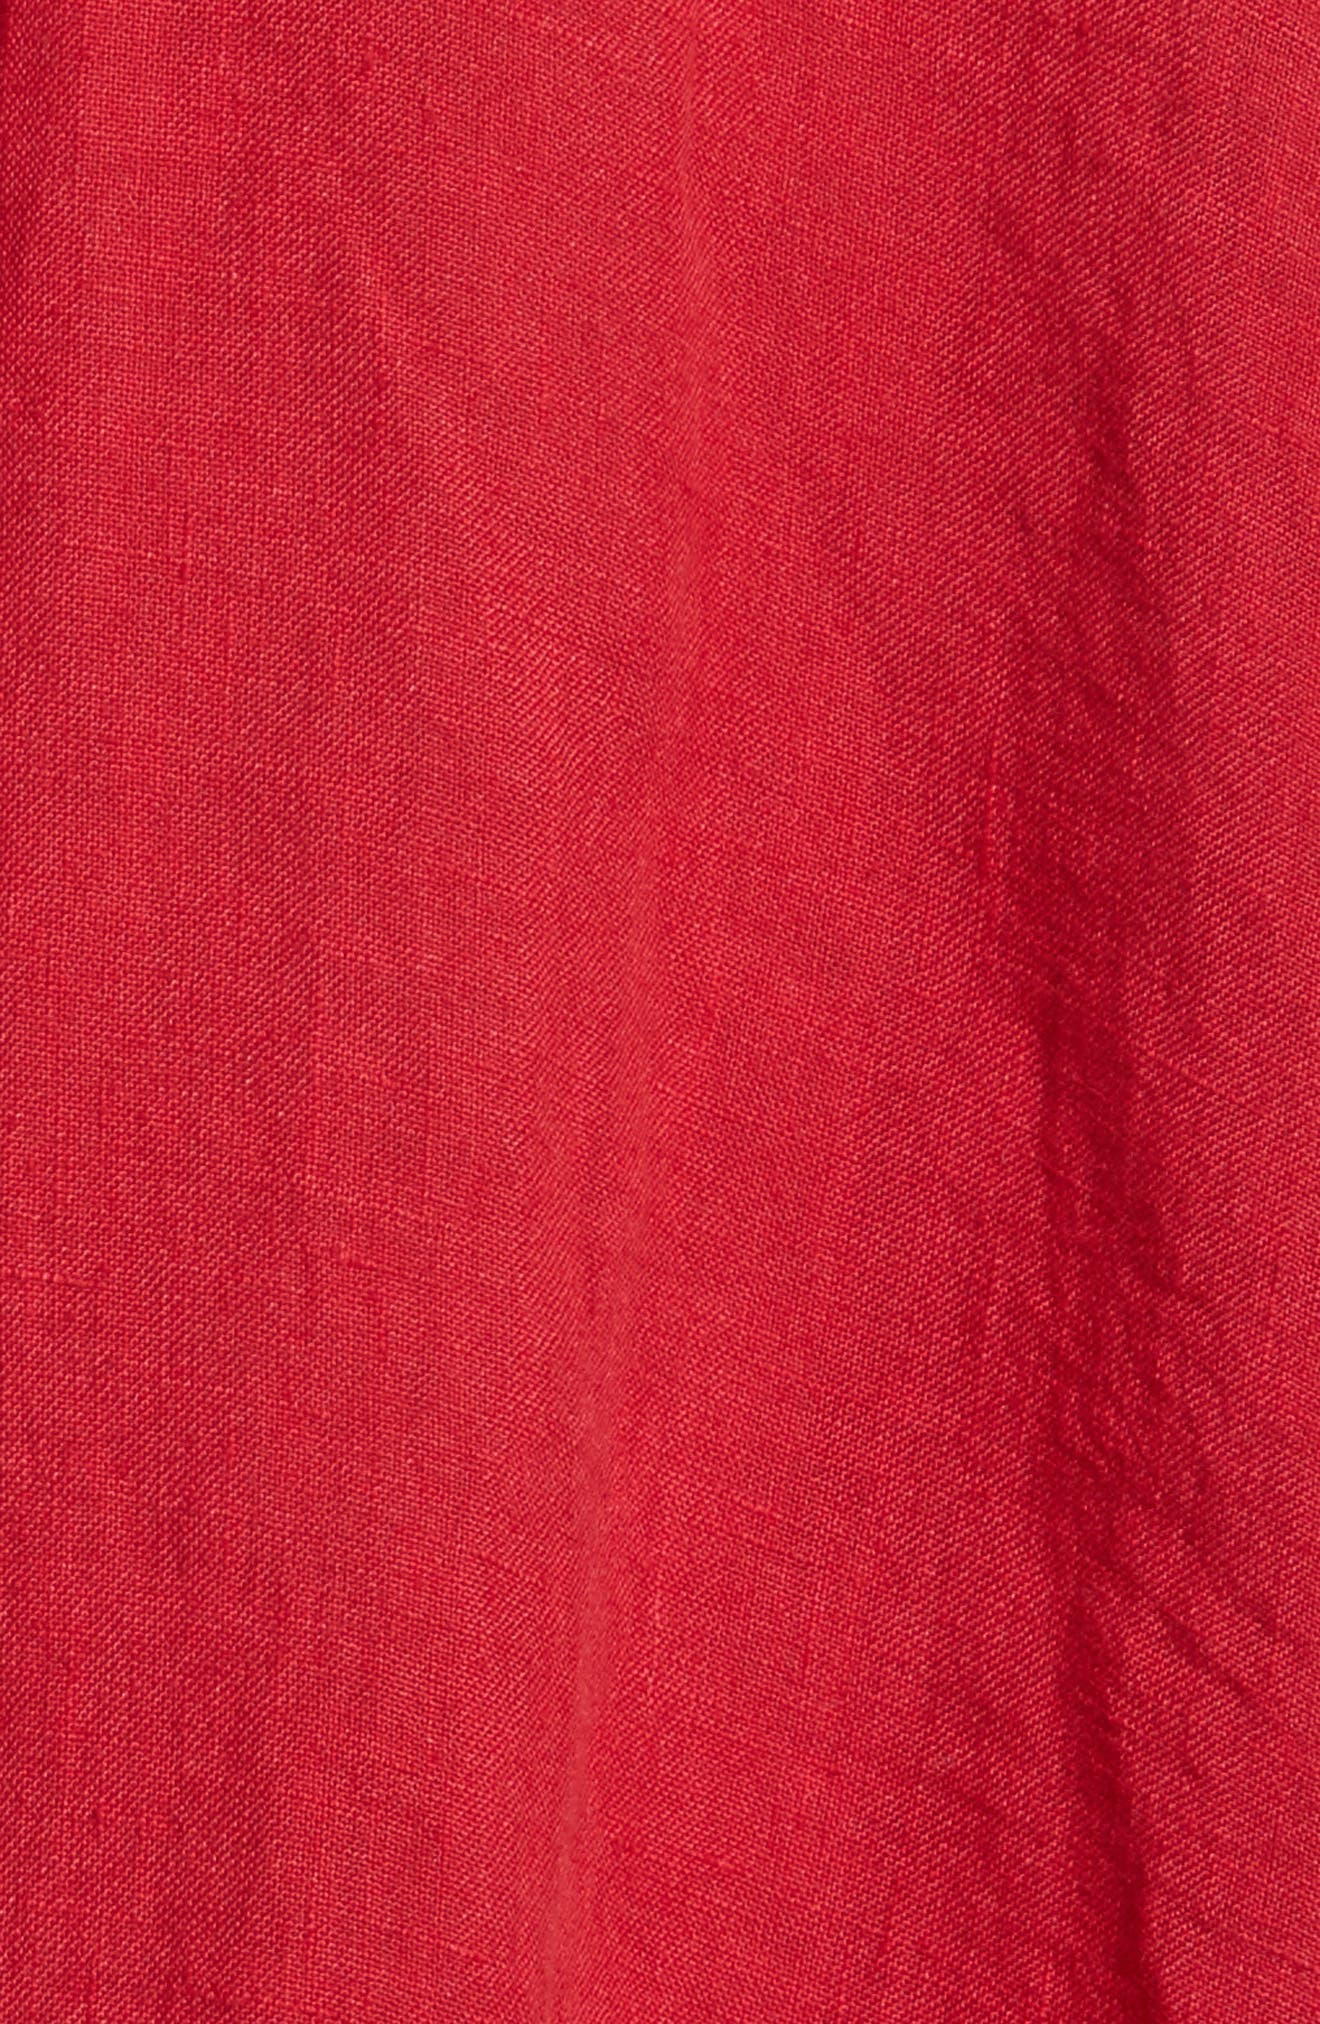 Cleo Linen Blouse,                             Alternate thumbnail 6, color,                             Red